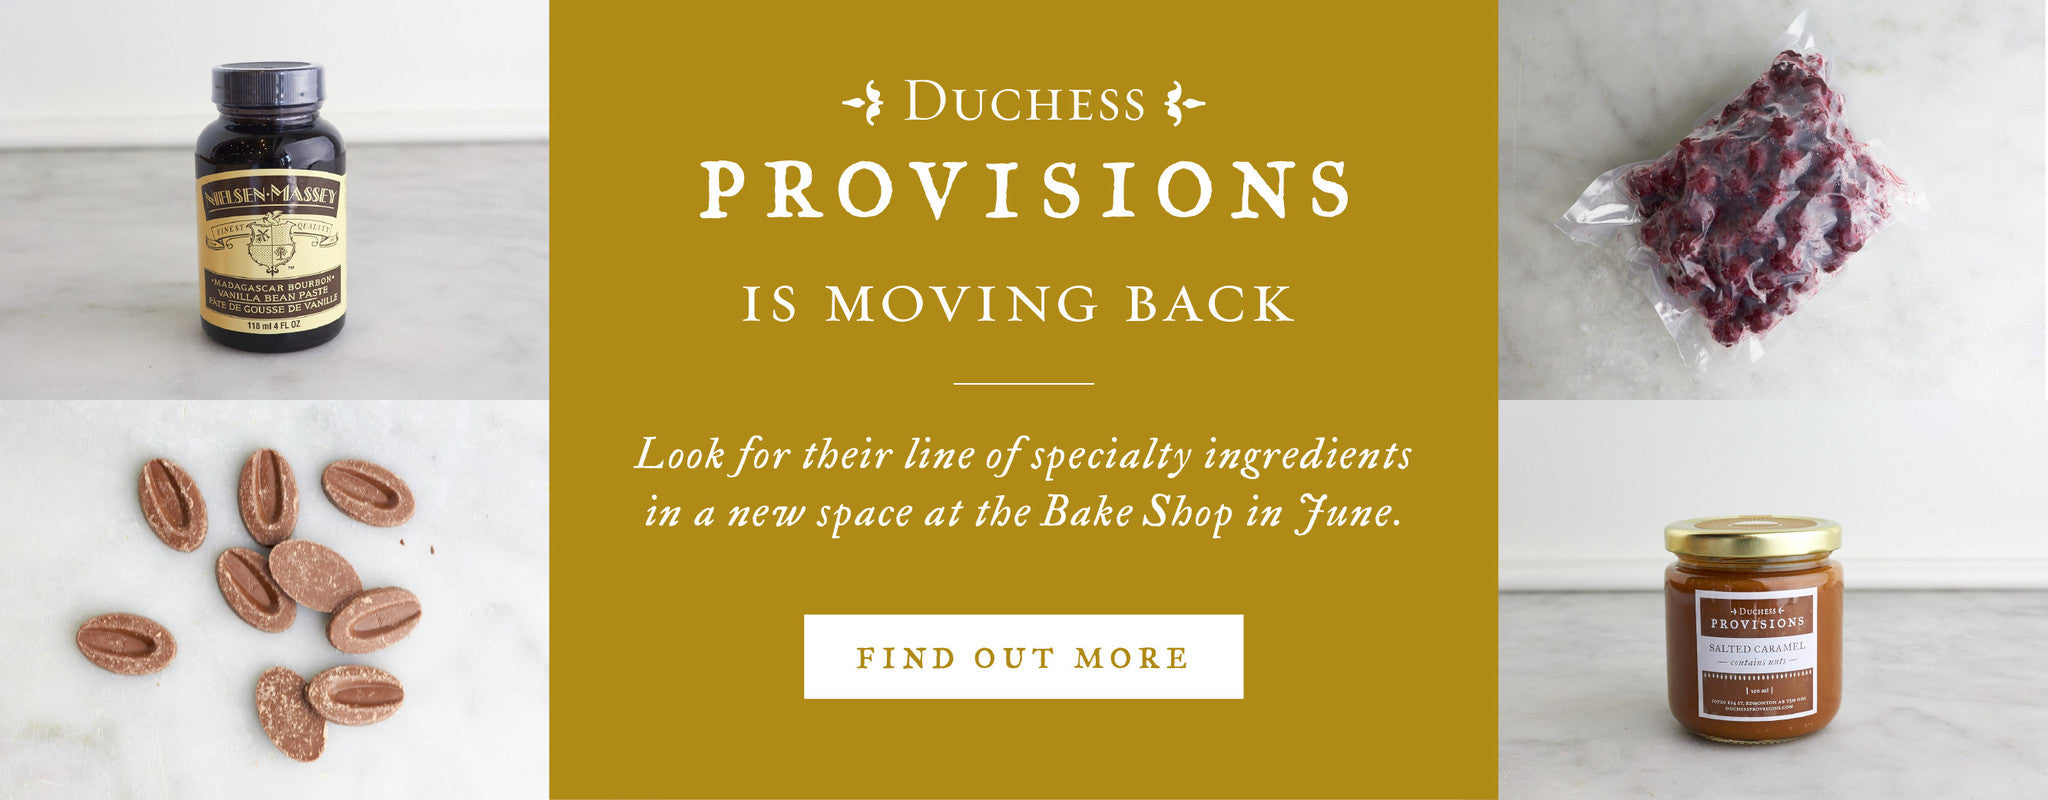 Provisions is Relocating